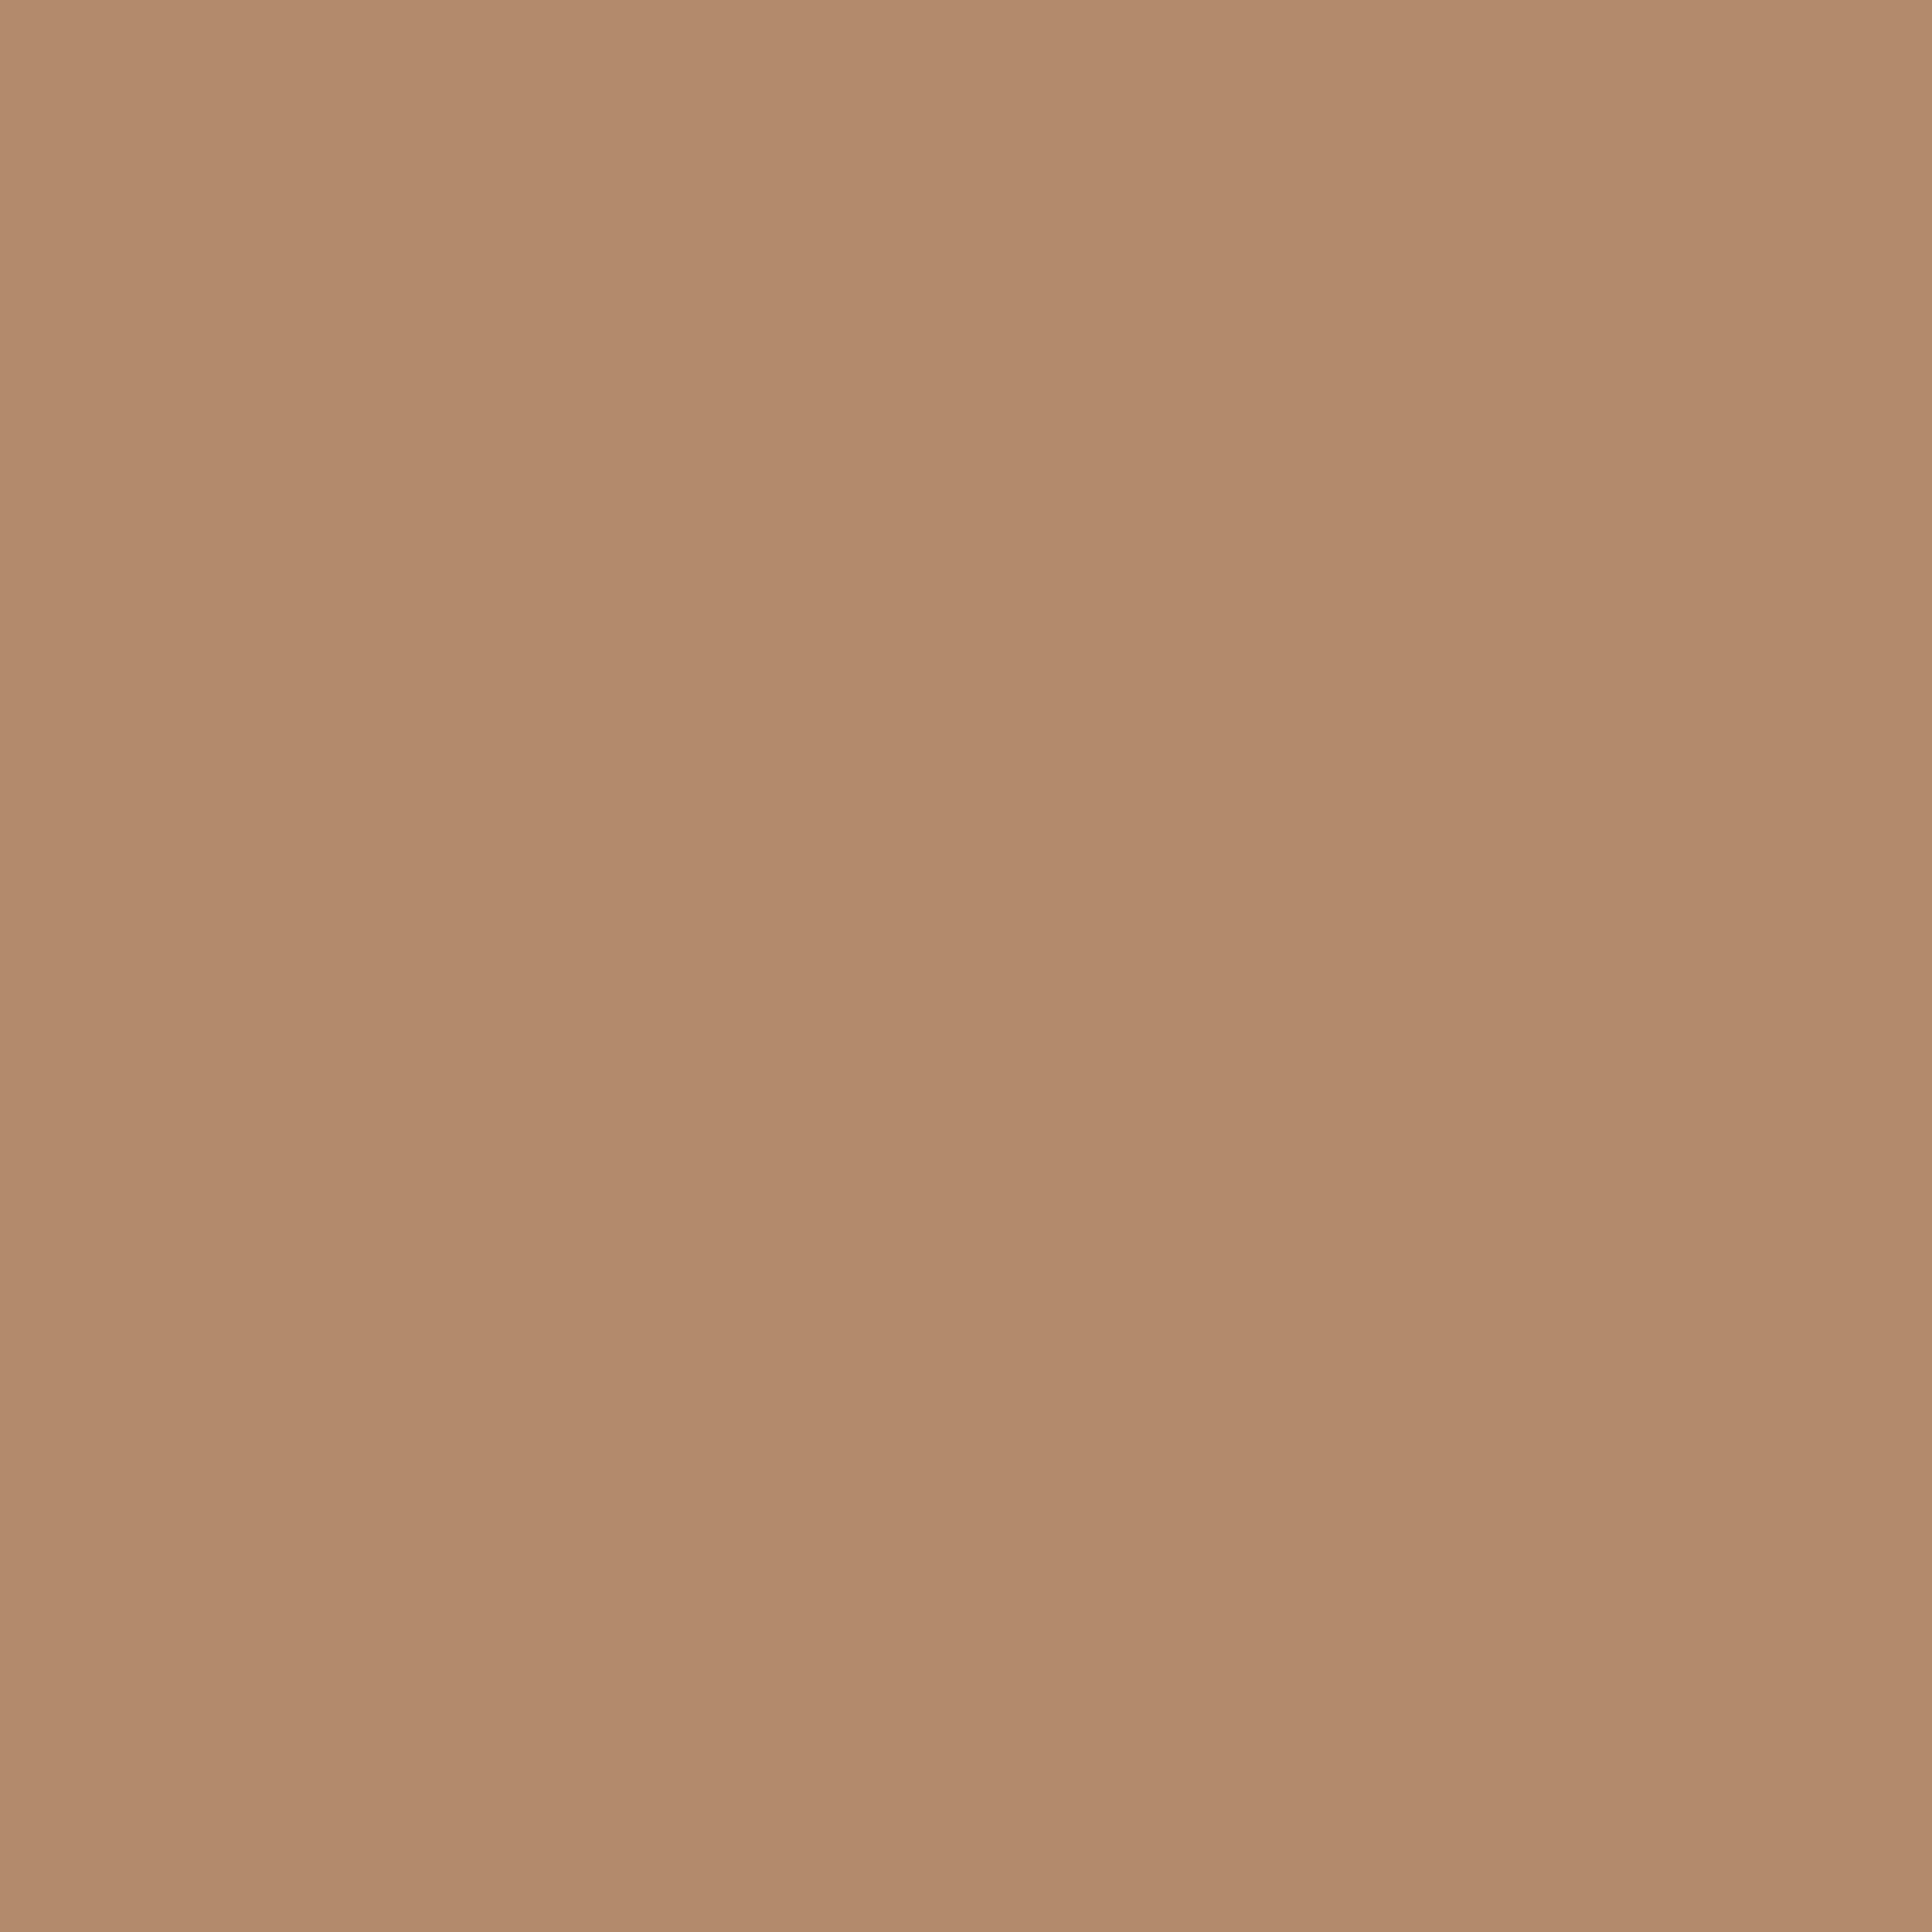 2048x2048 Light Taupe Solid Color Background